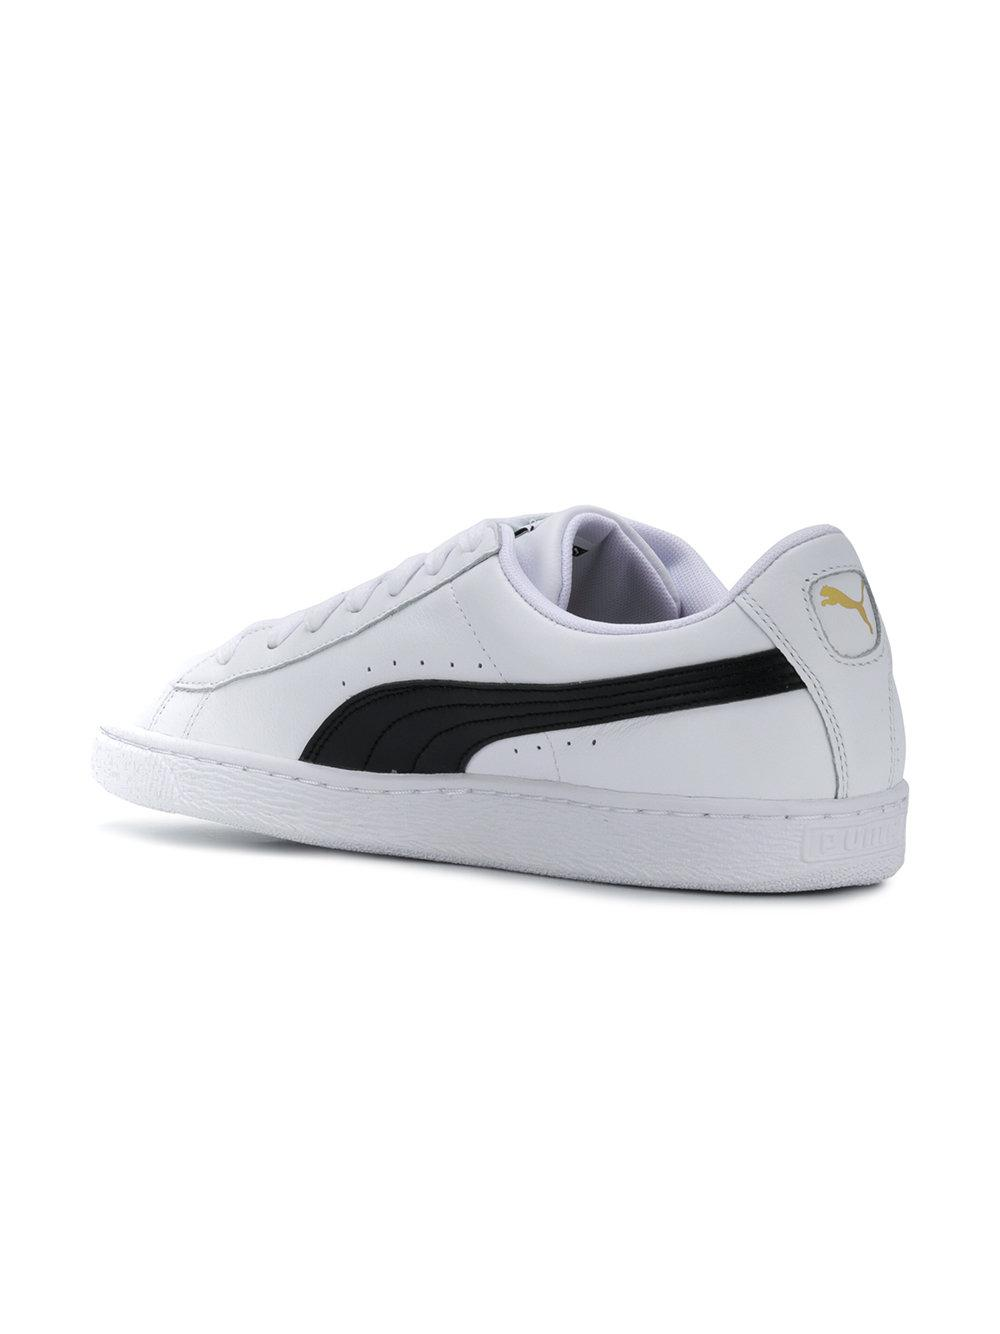 official photos 26899 6ceed PUMA White Heritage Basket Classic Sneakers for men